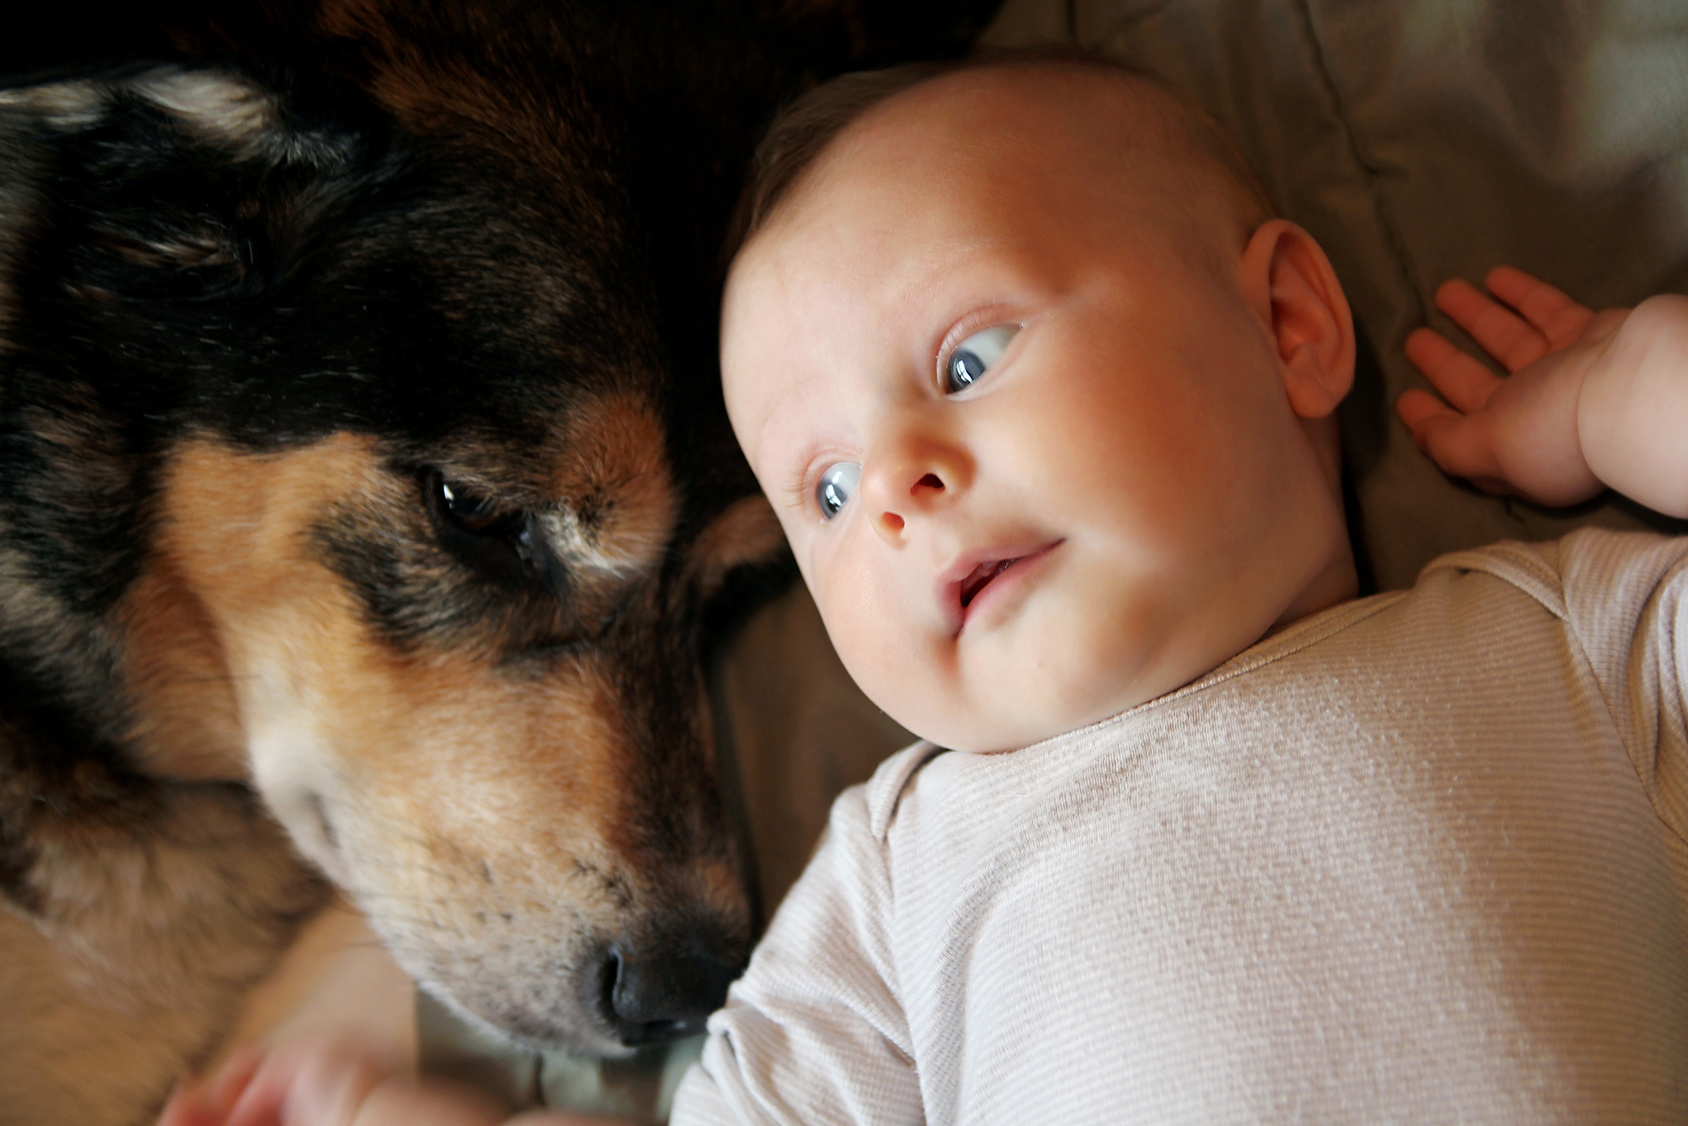 A one month old newborn baby girl is laying on a blanket snuggling with her Pet German Shepherd Dog.